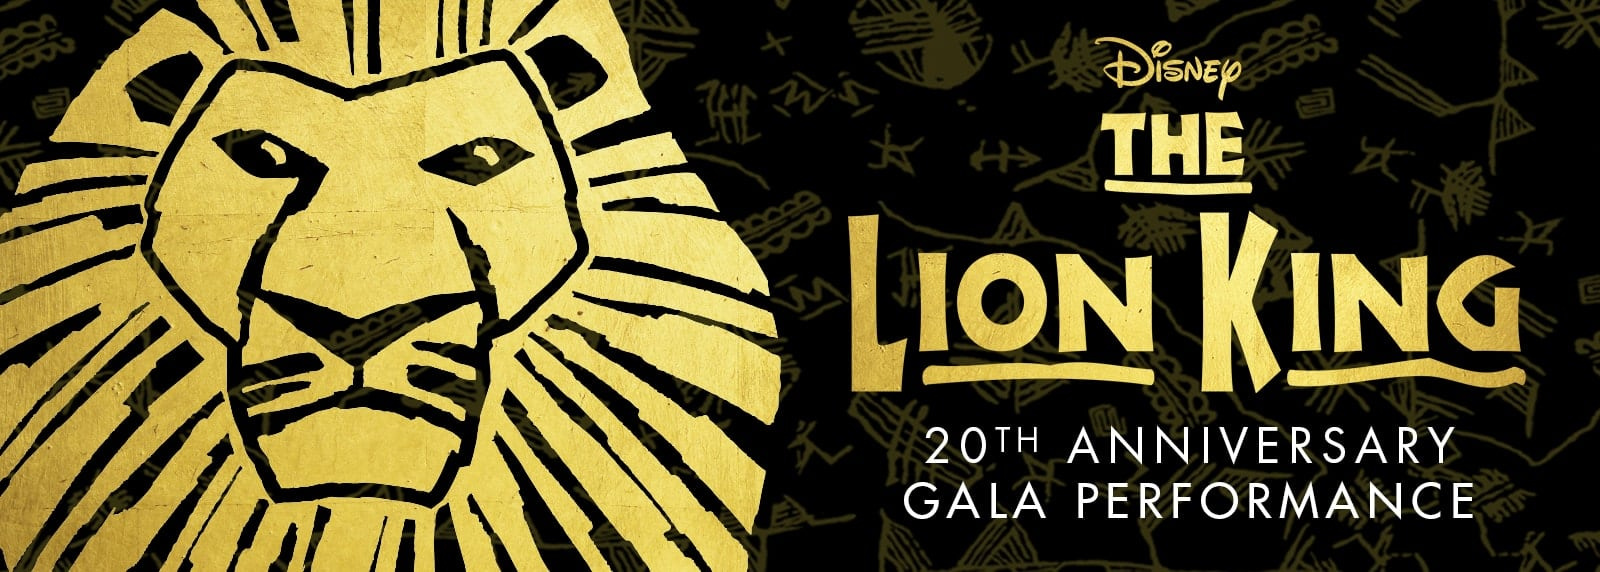 20th Anniversary The Lion King